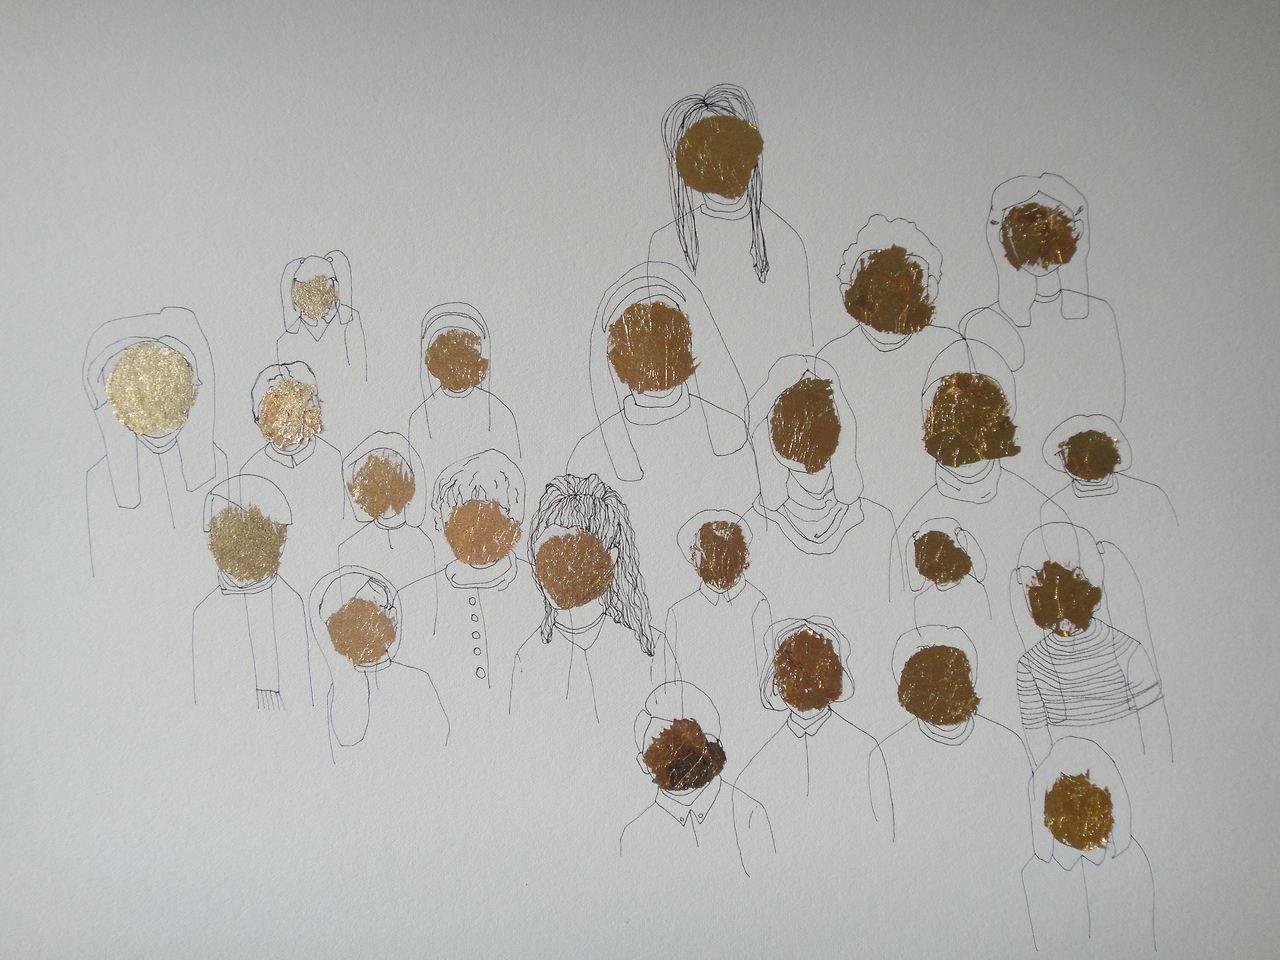 Detail of Untitled (gold faces)